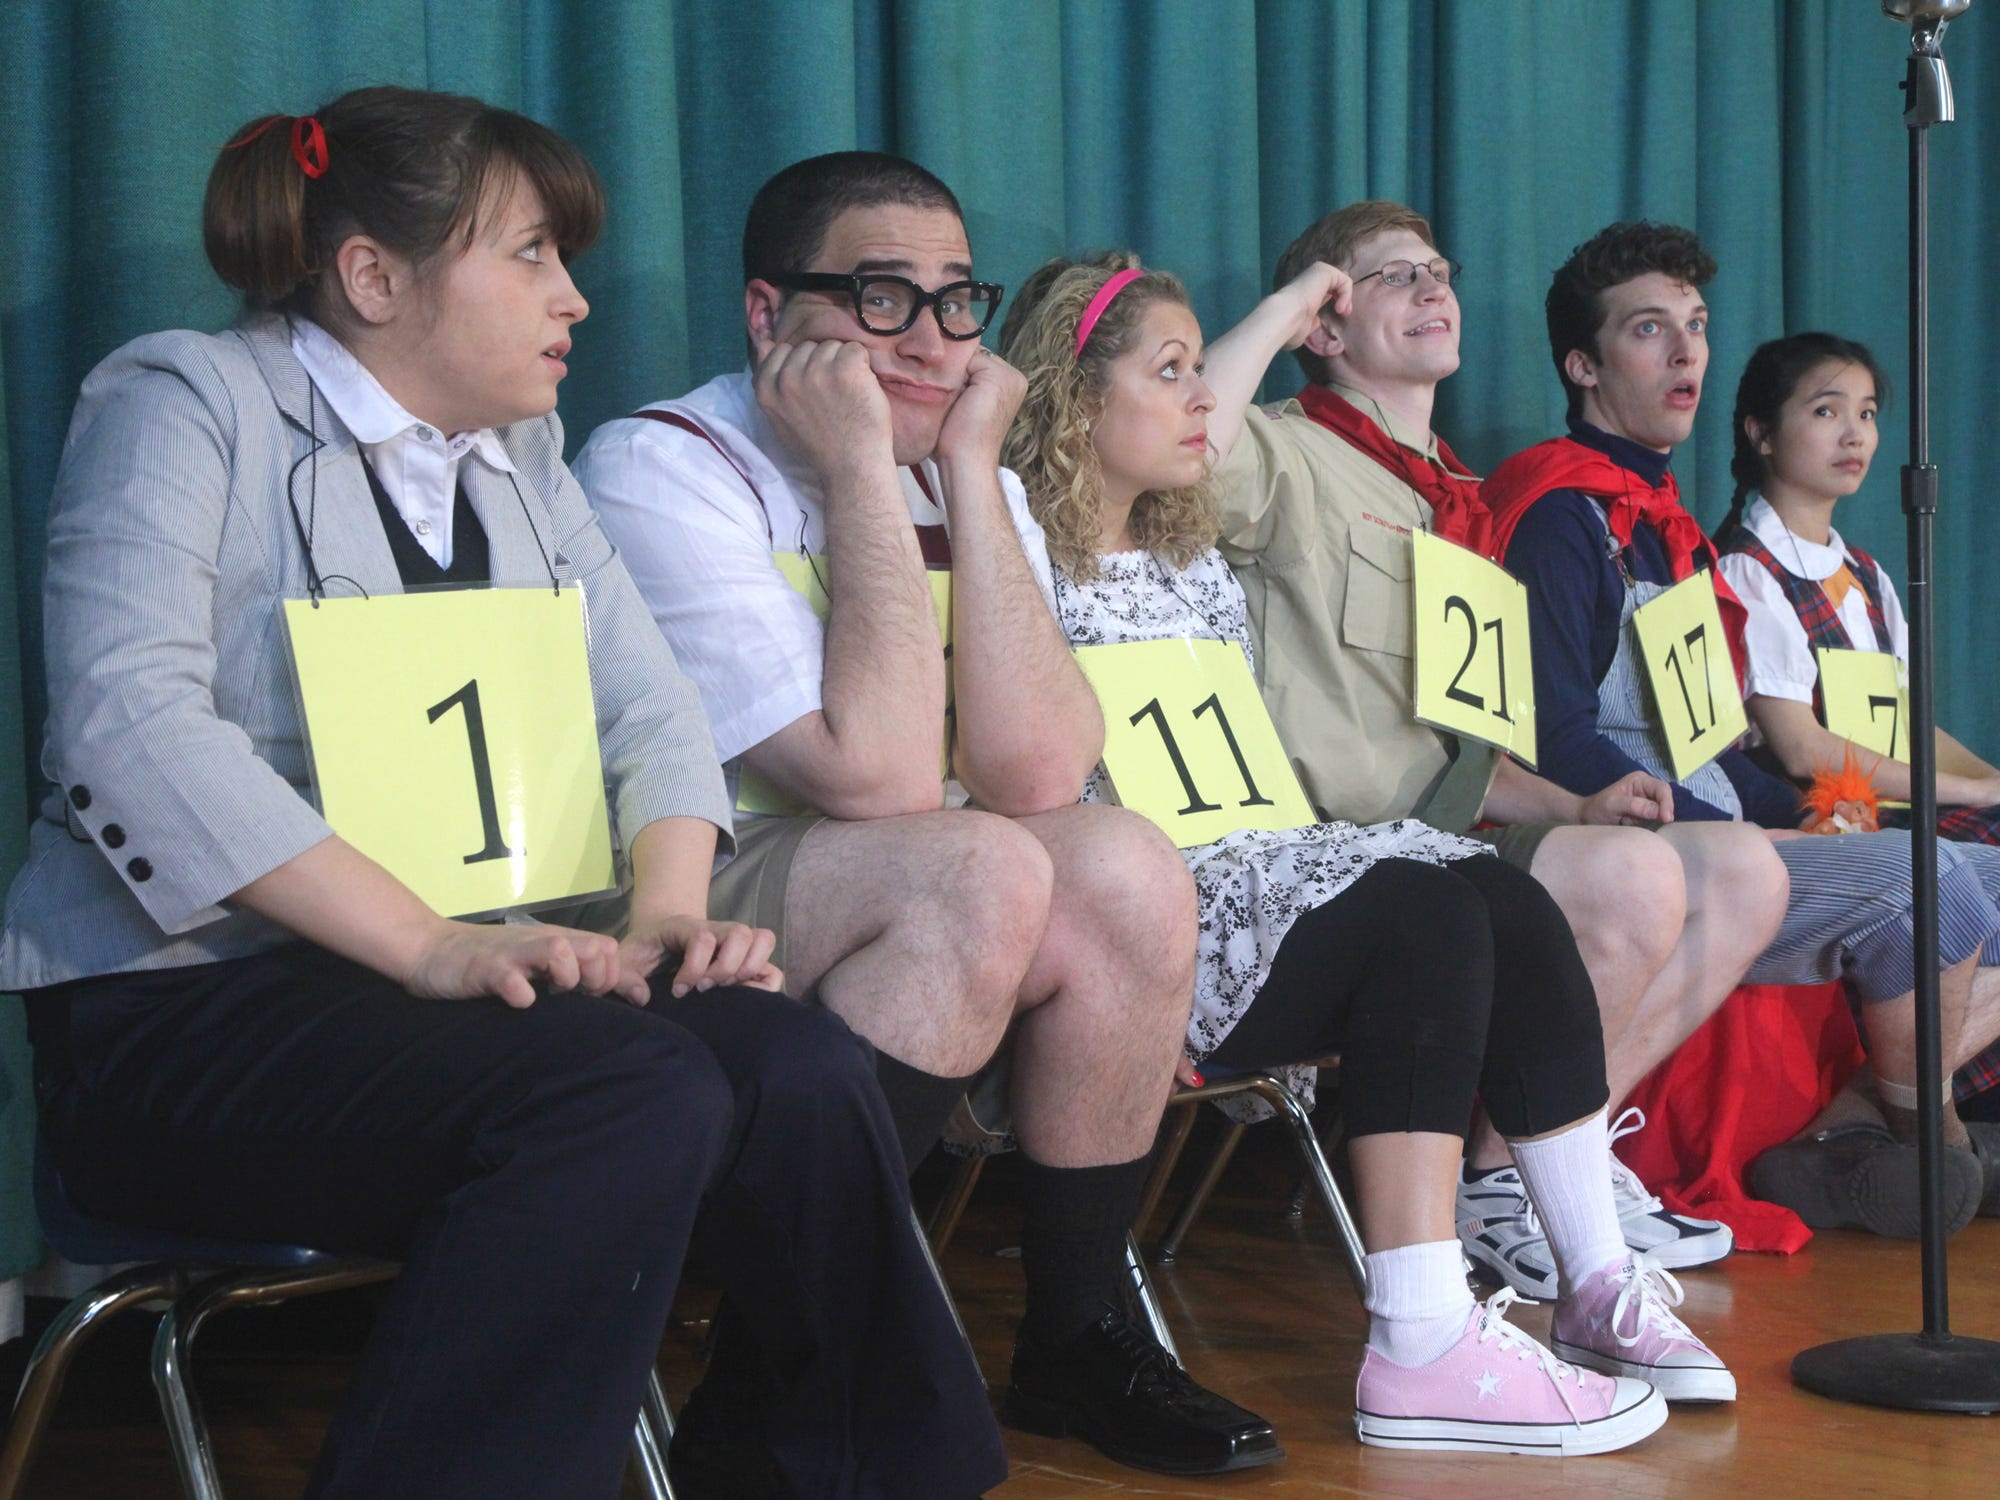 """The 25th Annual Putnam County Spelling Bee"" at Cider Mill Playhouse in 2011."